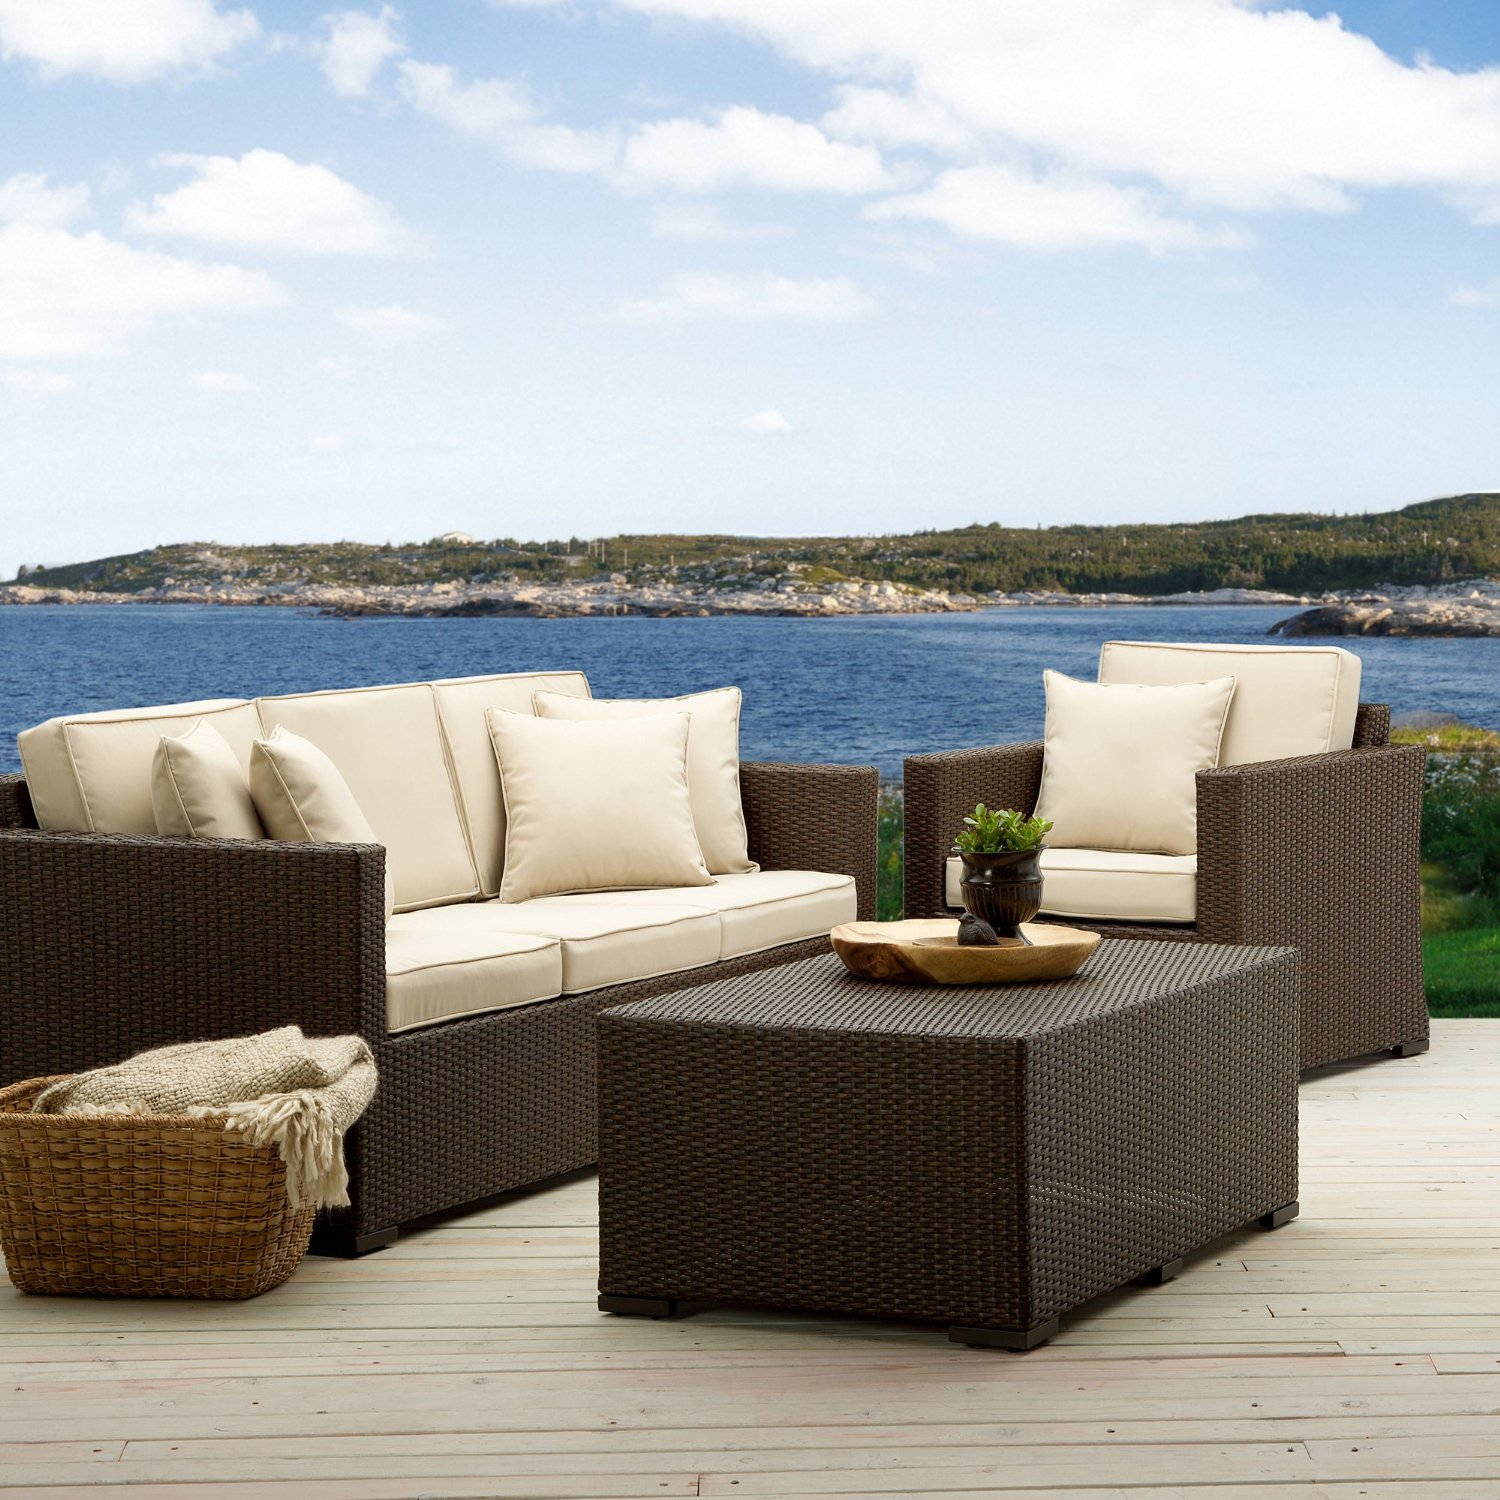 Patio Backyard Furniture : Patio Furniture